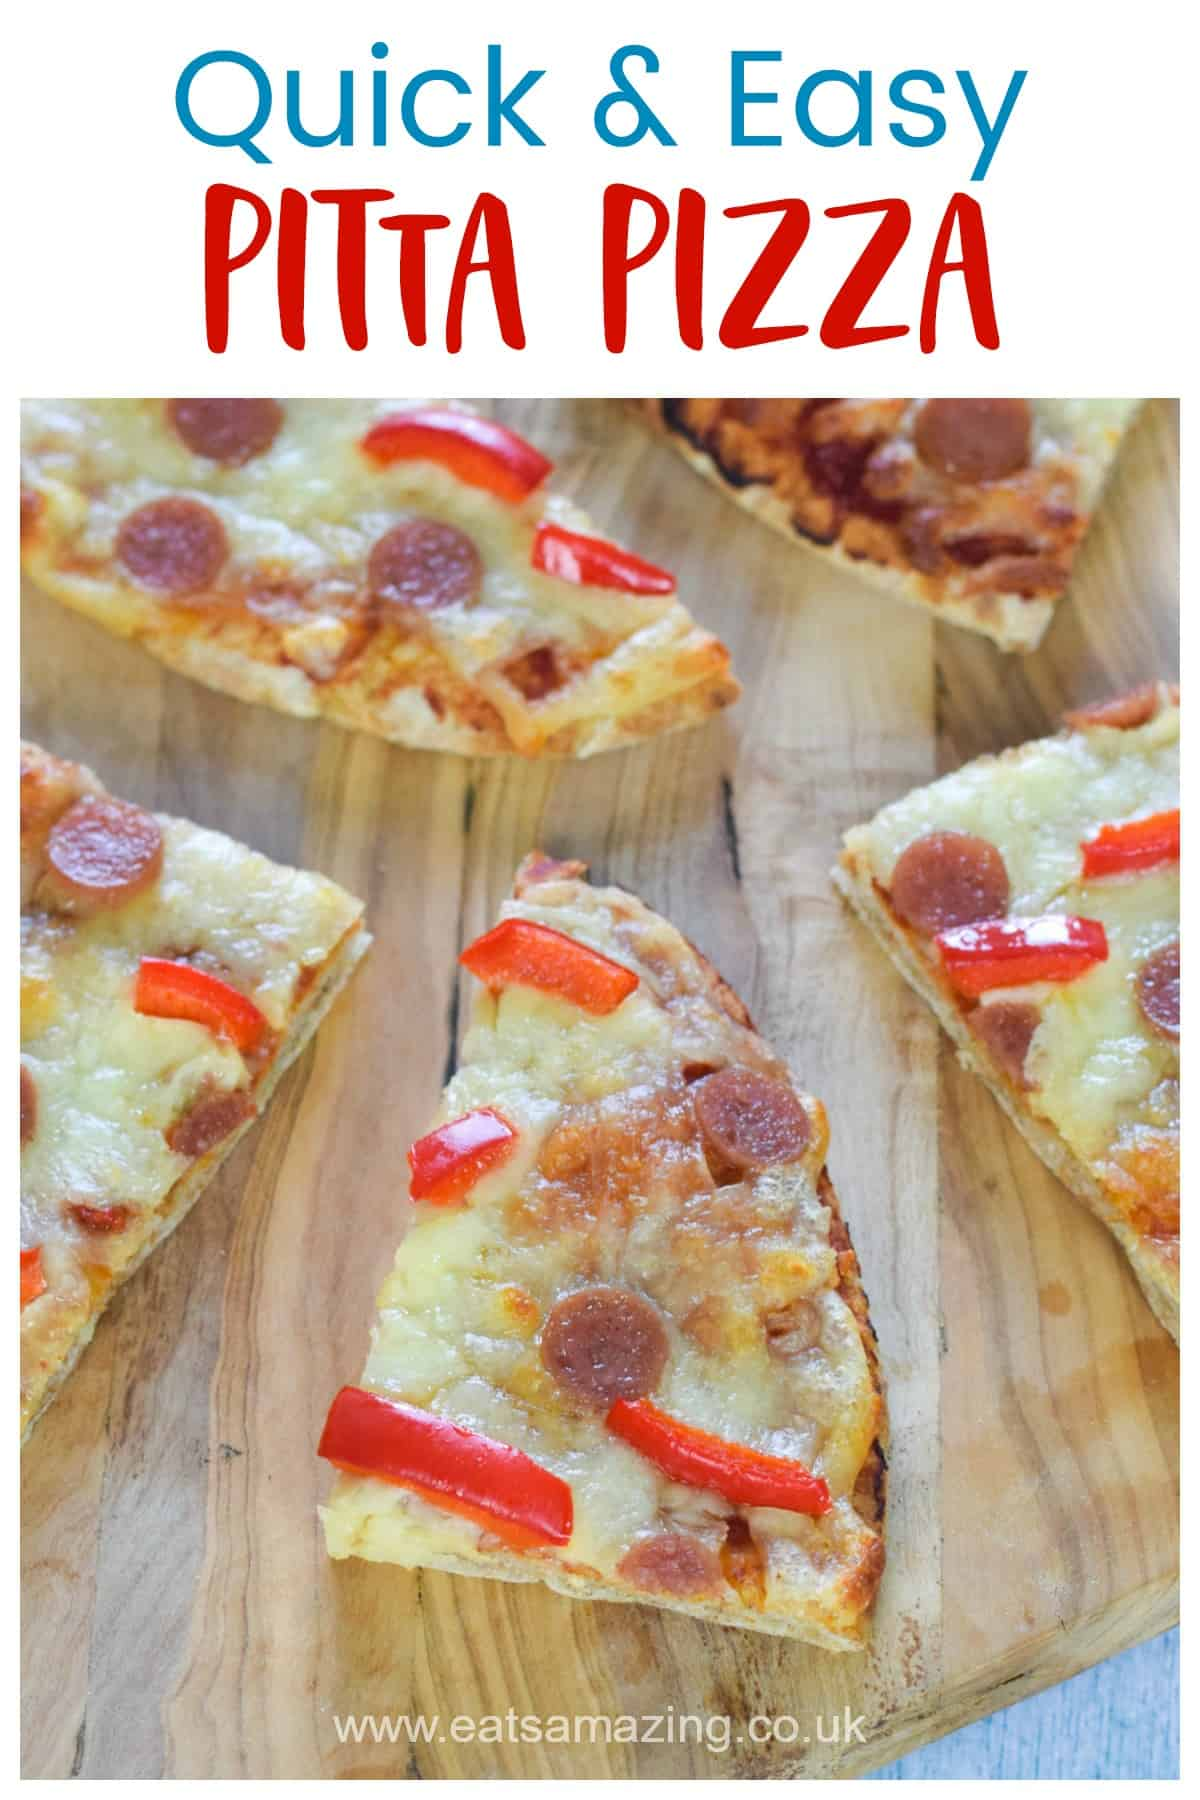 How to make quick pitta pizza - fun and easy recipe for kids with free printable kid-friendly recipe sheet